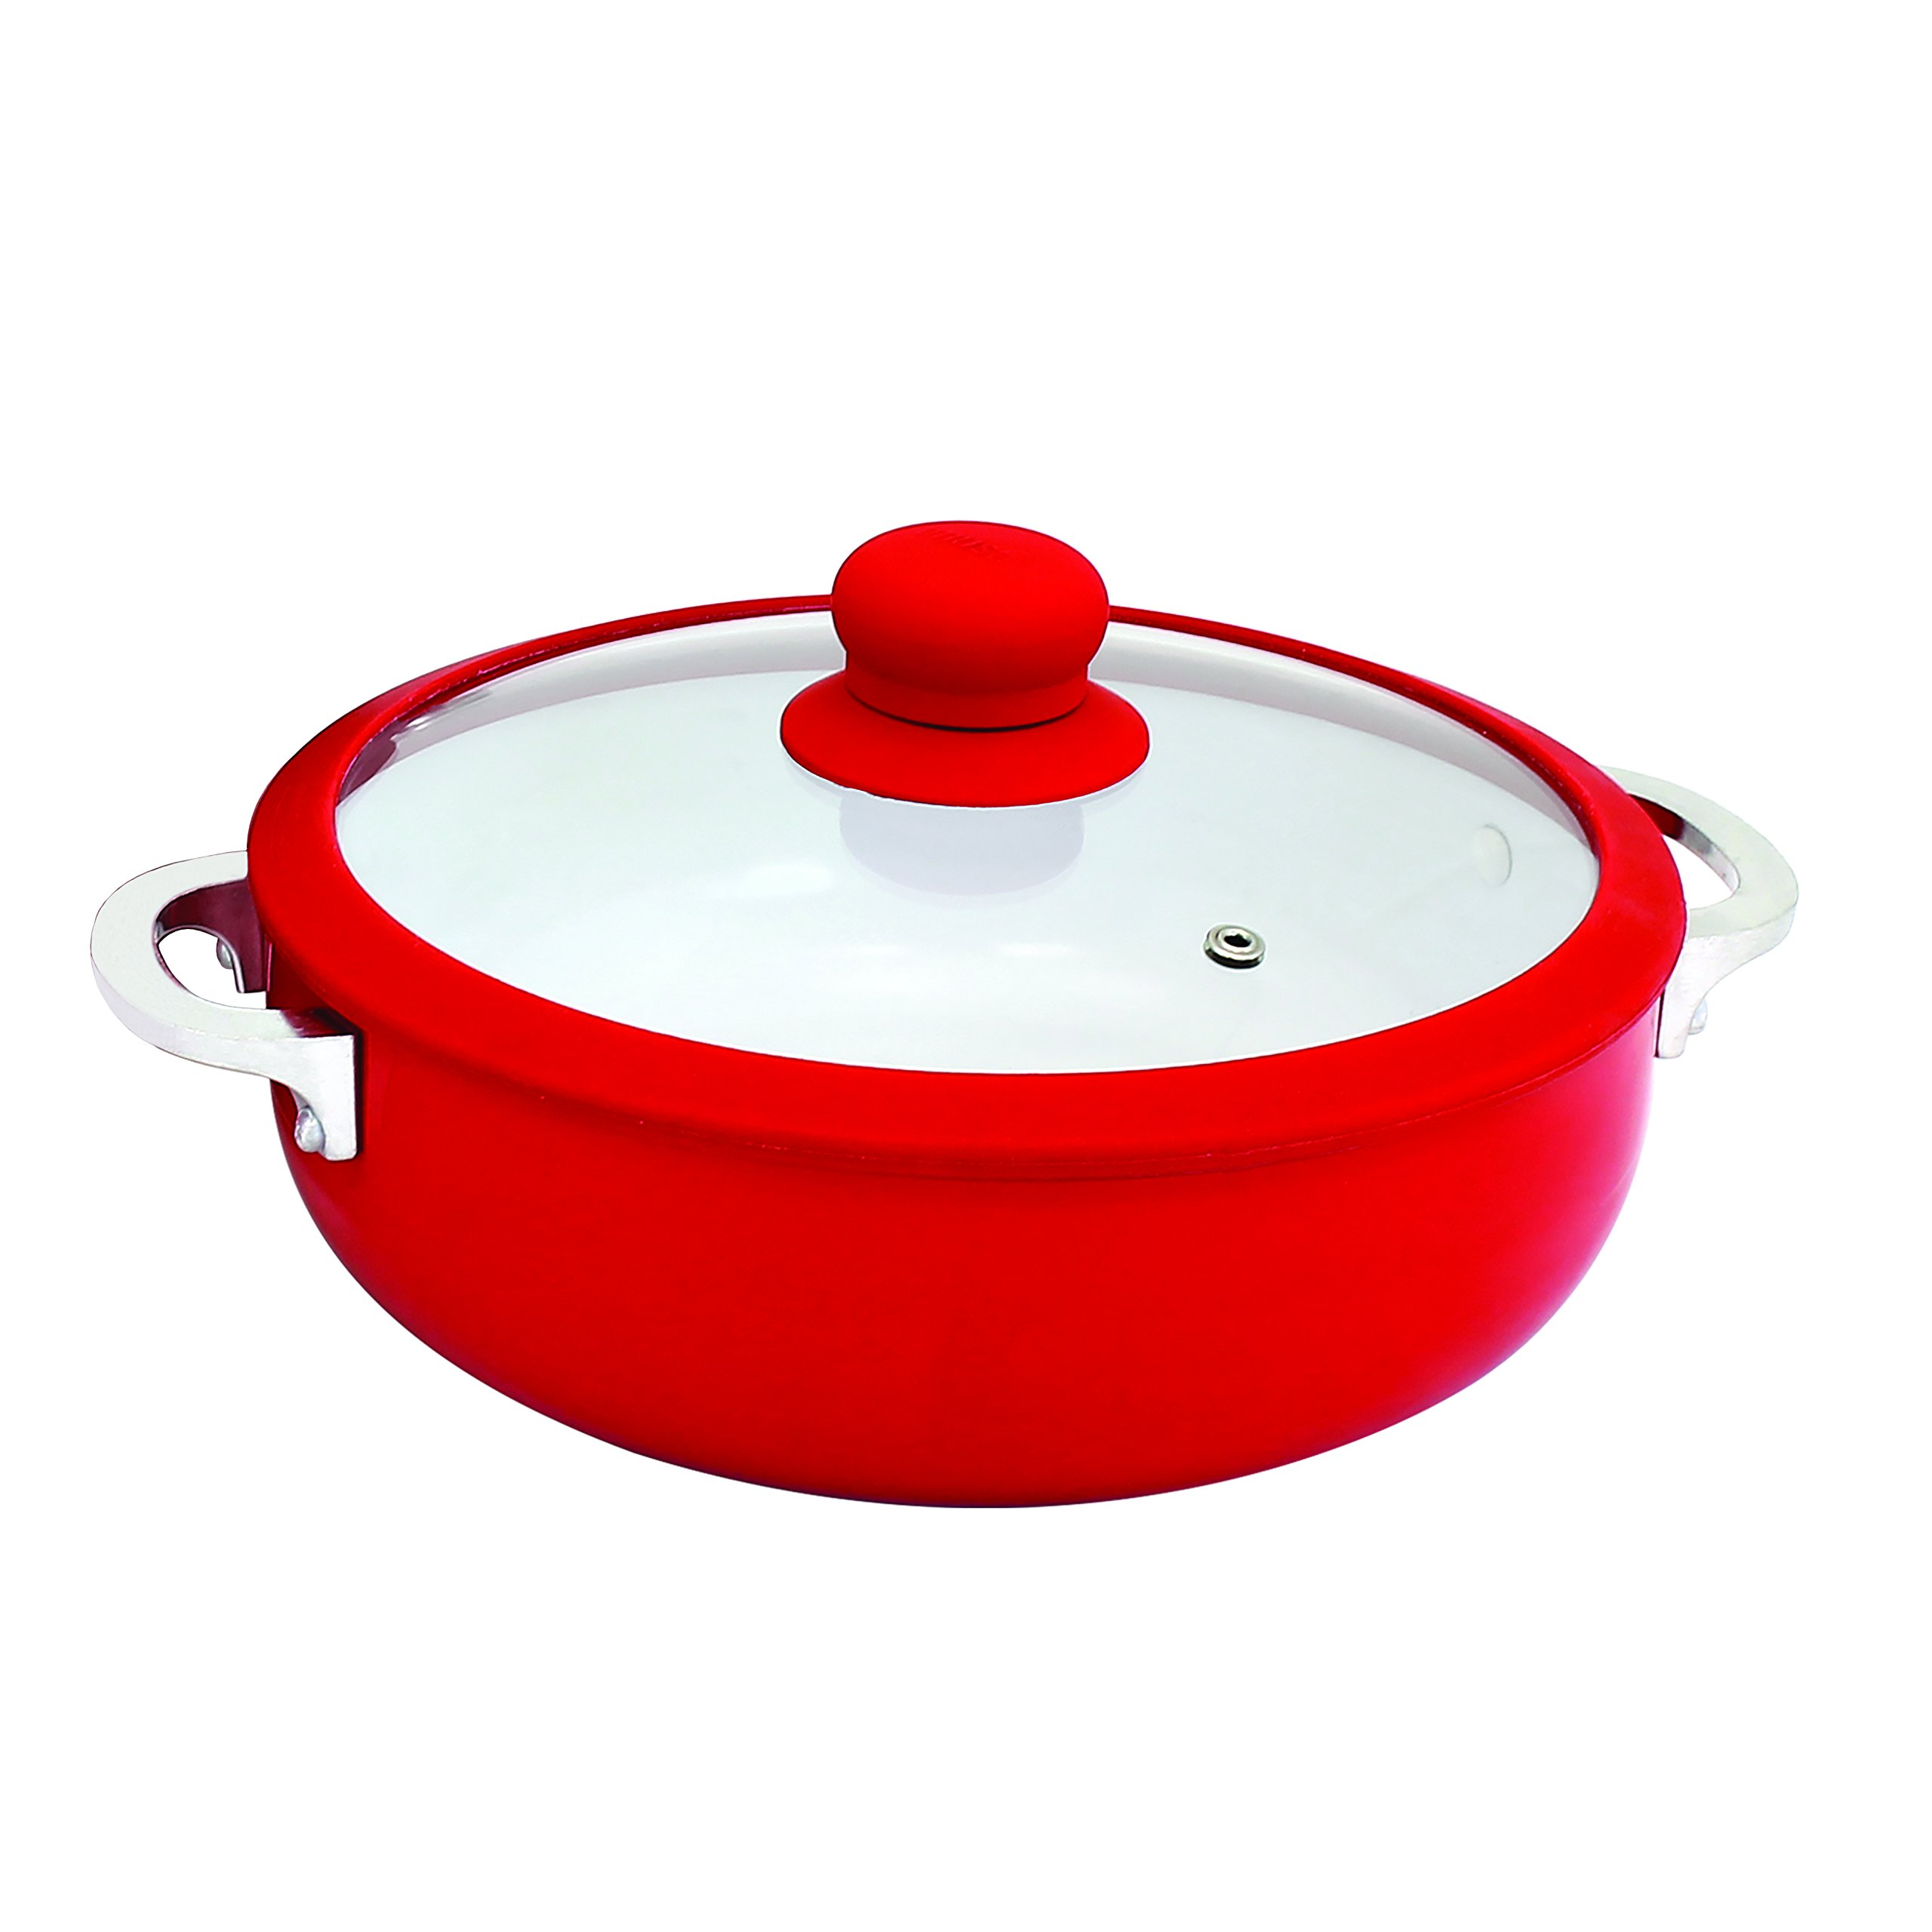 IMUSA USA CHI-00071R Ceramic Caldero Nonstick with Silicone Rim & Glass Lid 3.2-Quart, Red